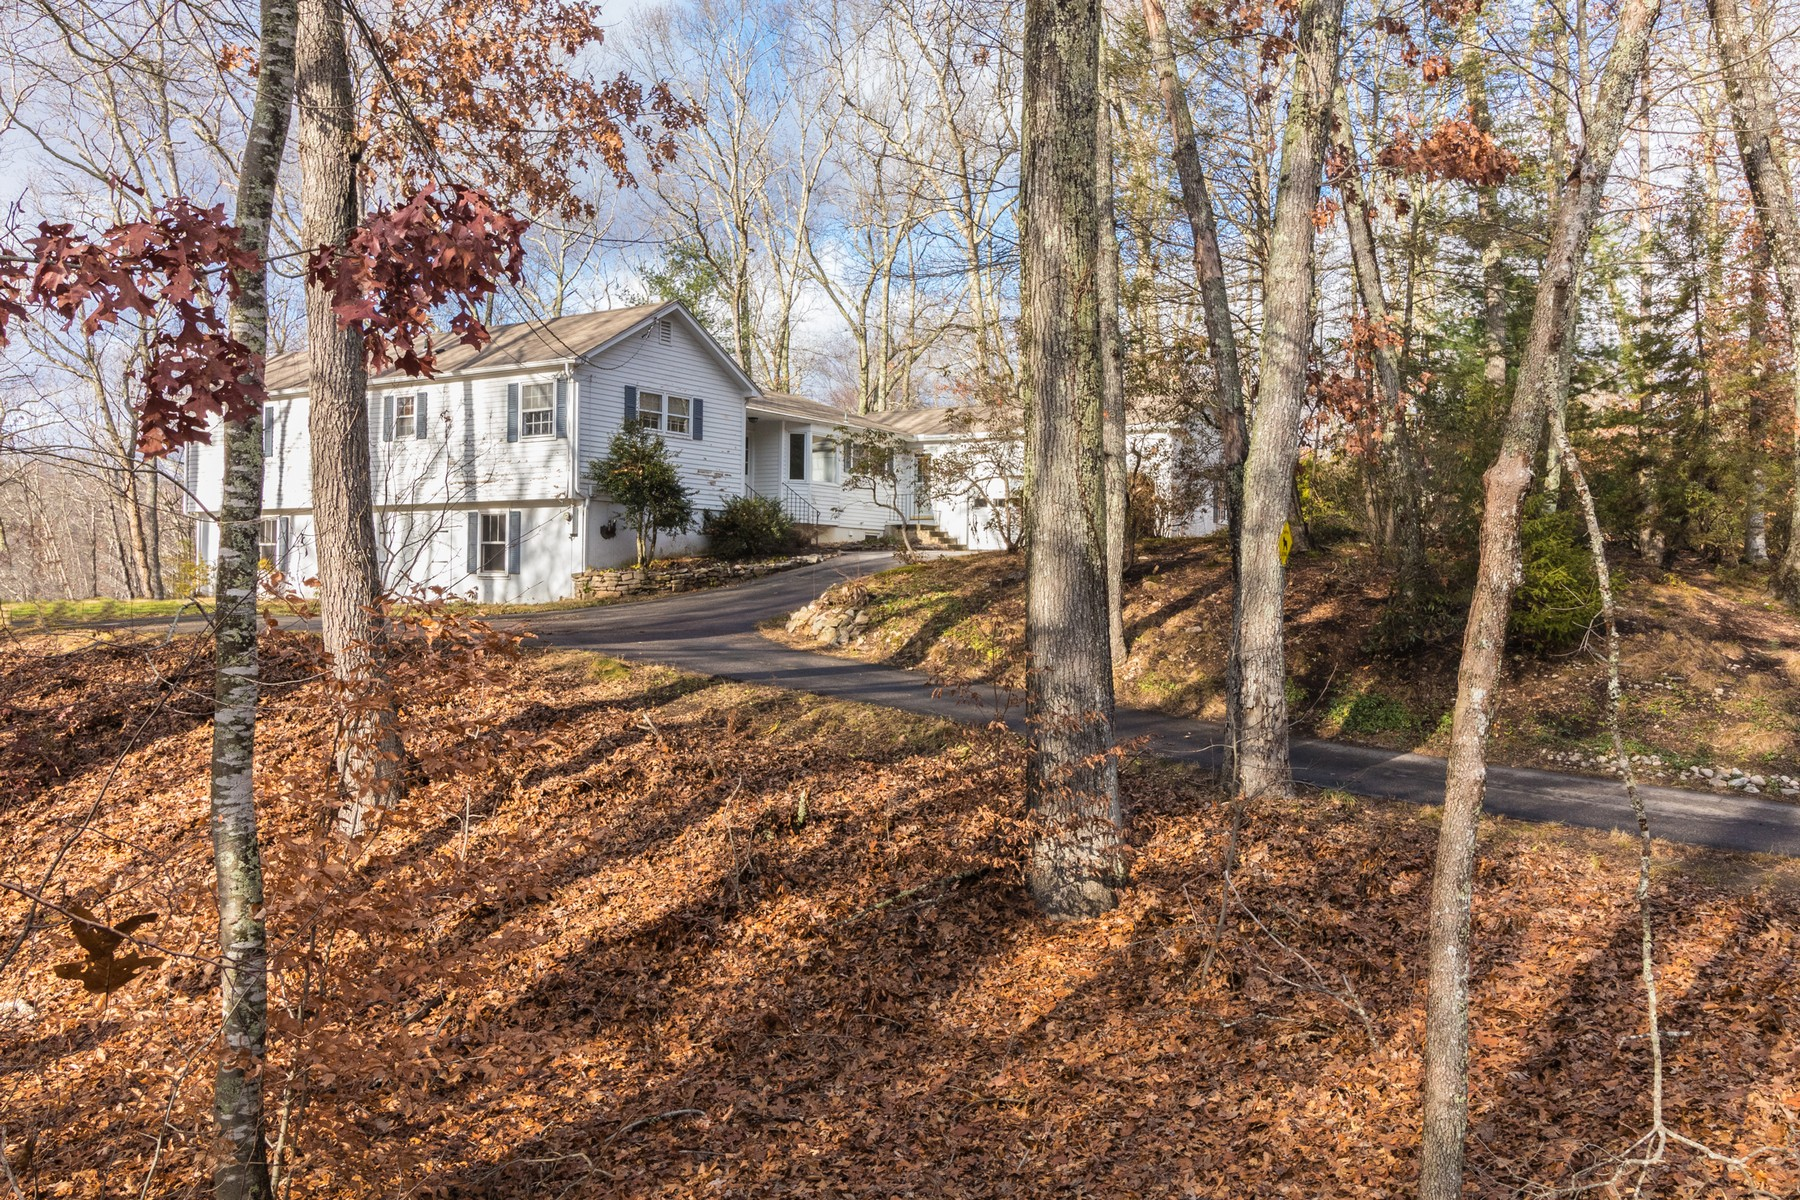 Single Family Home for Sale at Charming Three Bedroom Home 12 Jericho Drive Old Lyme, Connecticut 06371 United States